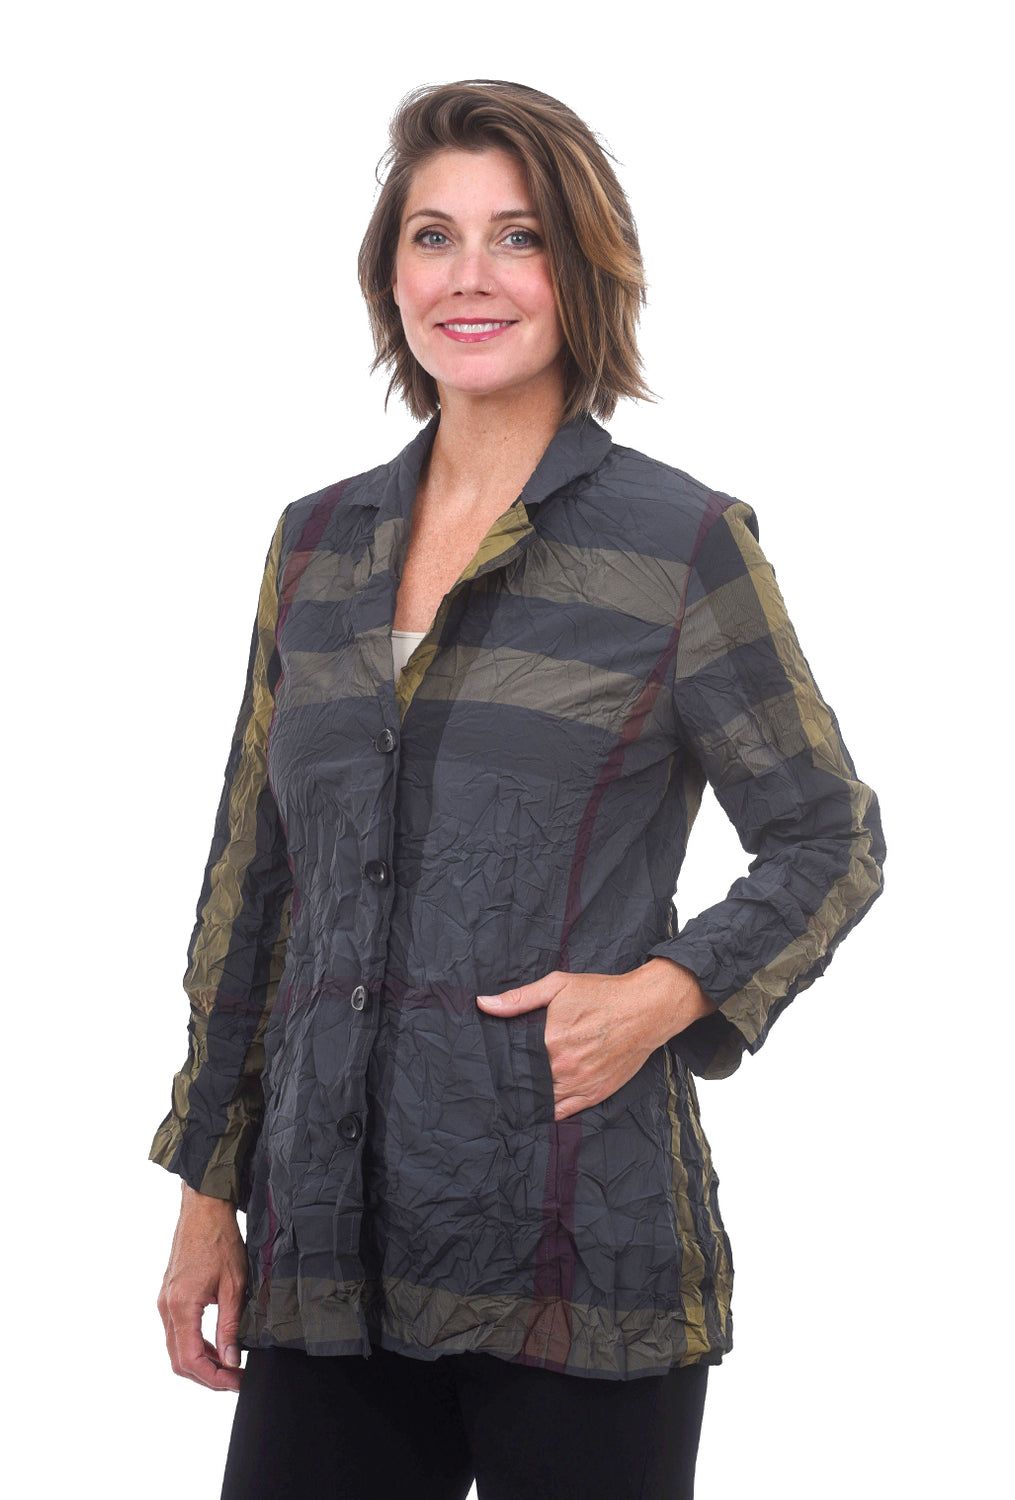 Liv by Habitat Scrunch Tartan Jacket, Khaki